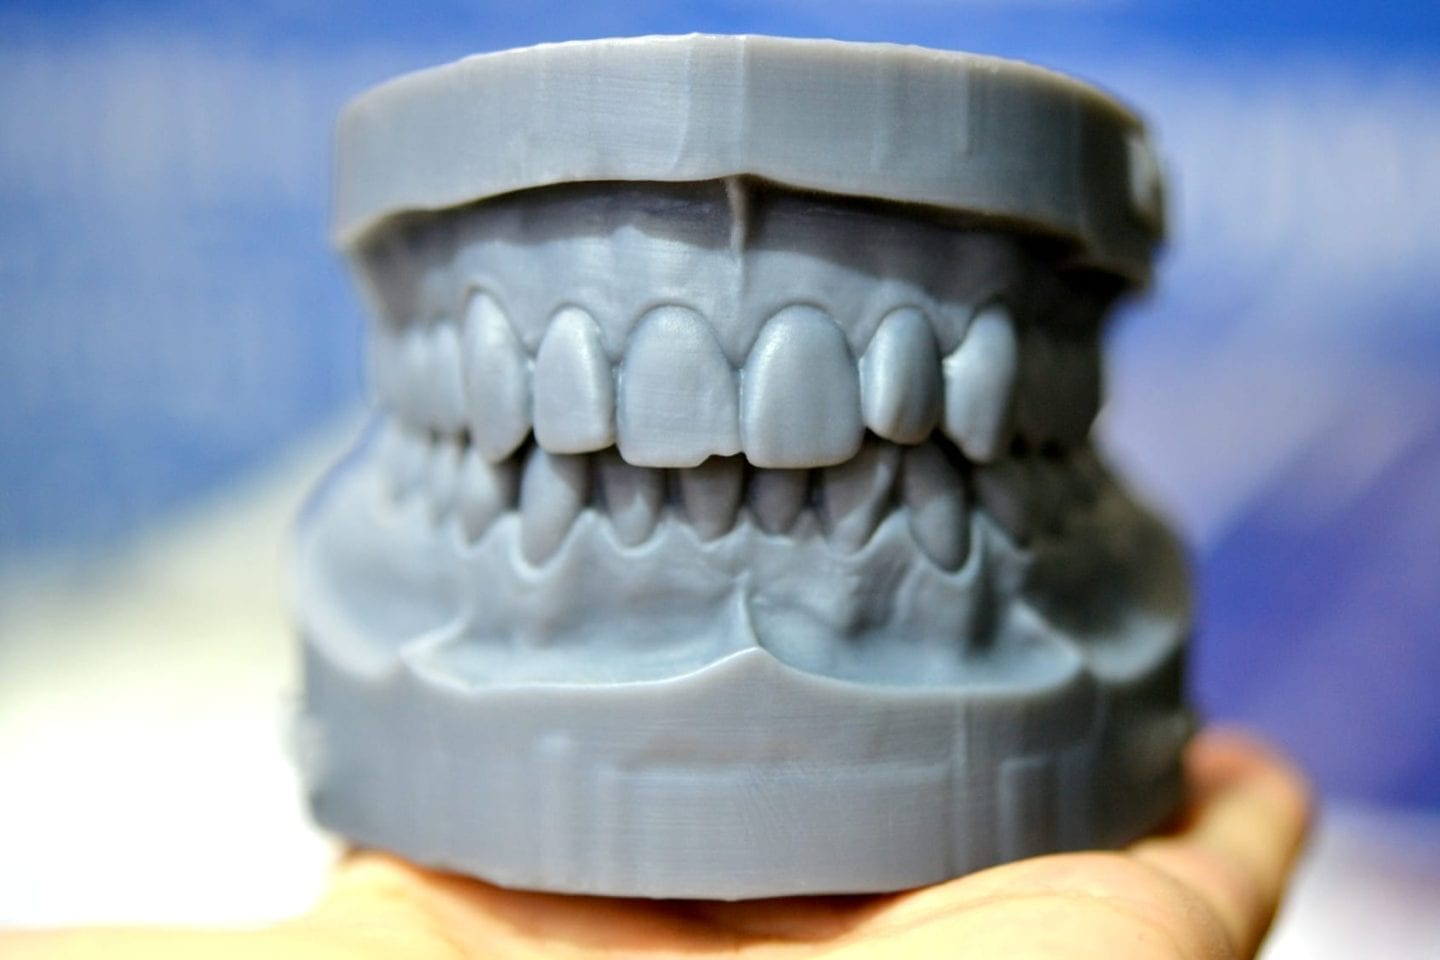 dental 3D printers are saving dentists and orall/maxillofacial professionals of all kinds time and money